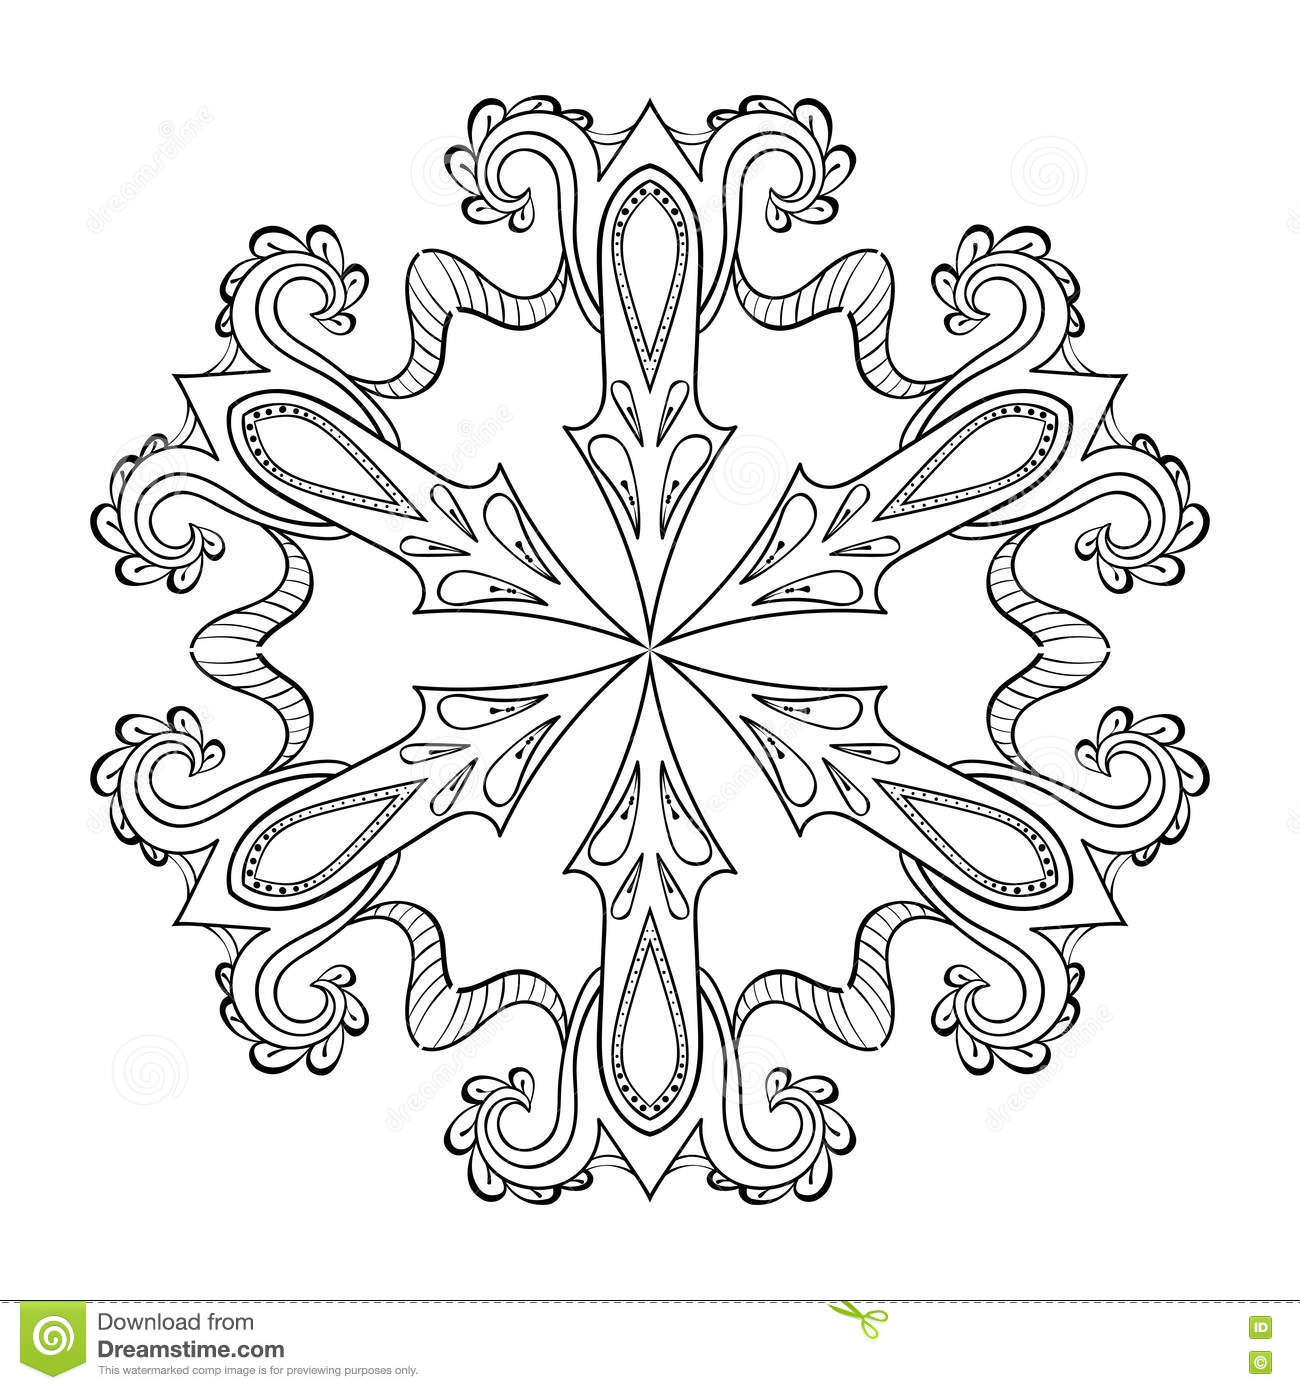 winter adult coloring pages Vector Zentangle Snow Flake, Mandala For Adult Coloring Pages. O  winter adult coloring pages